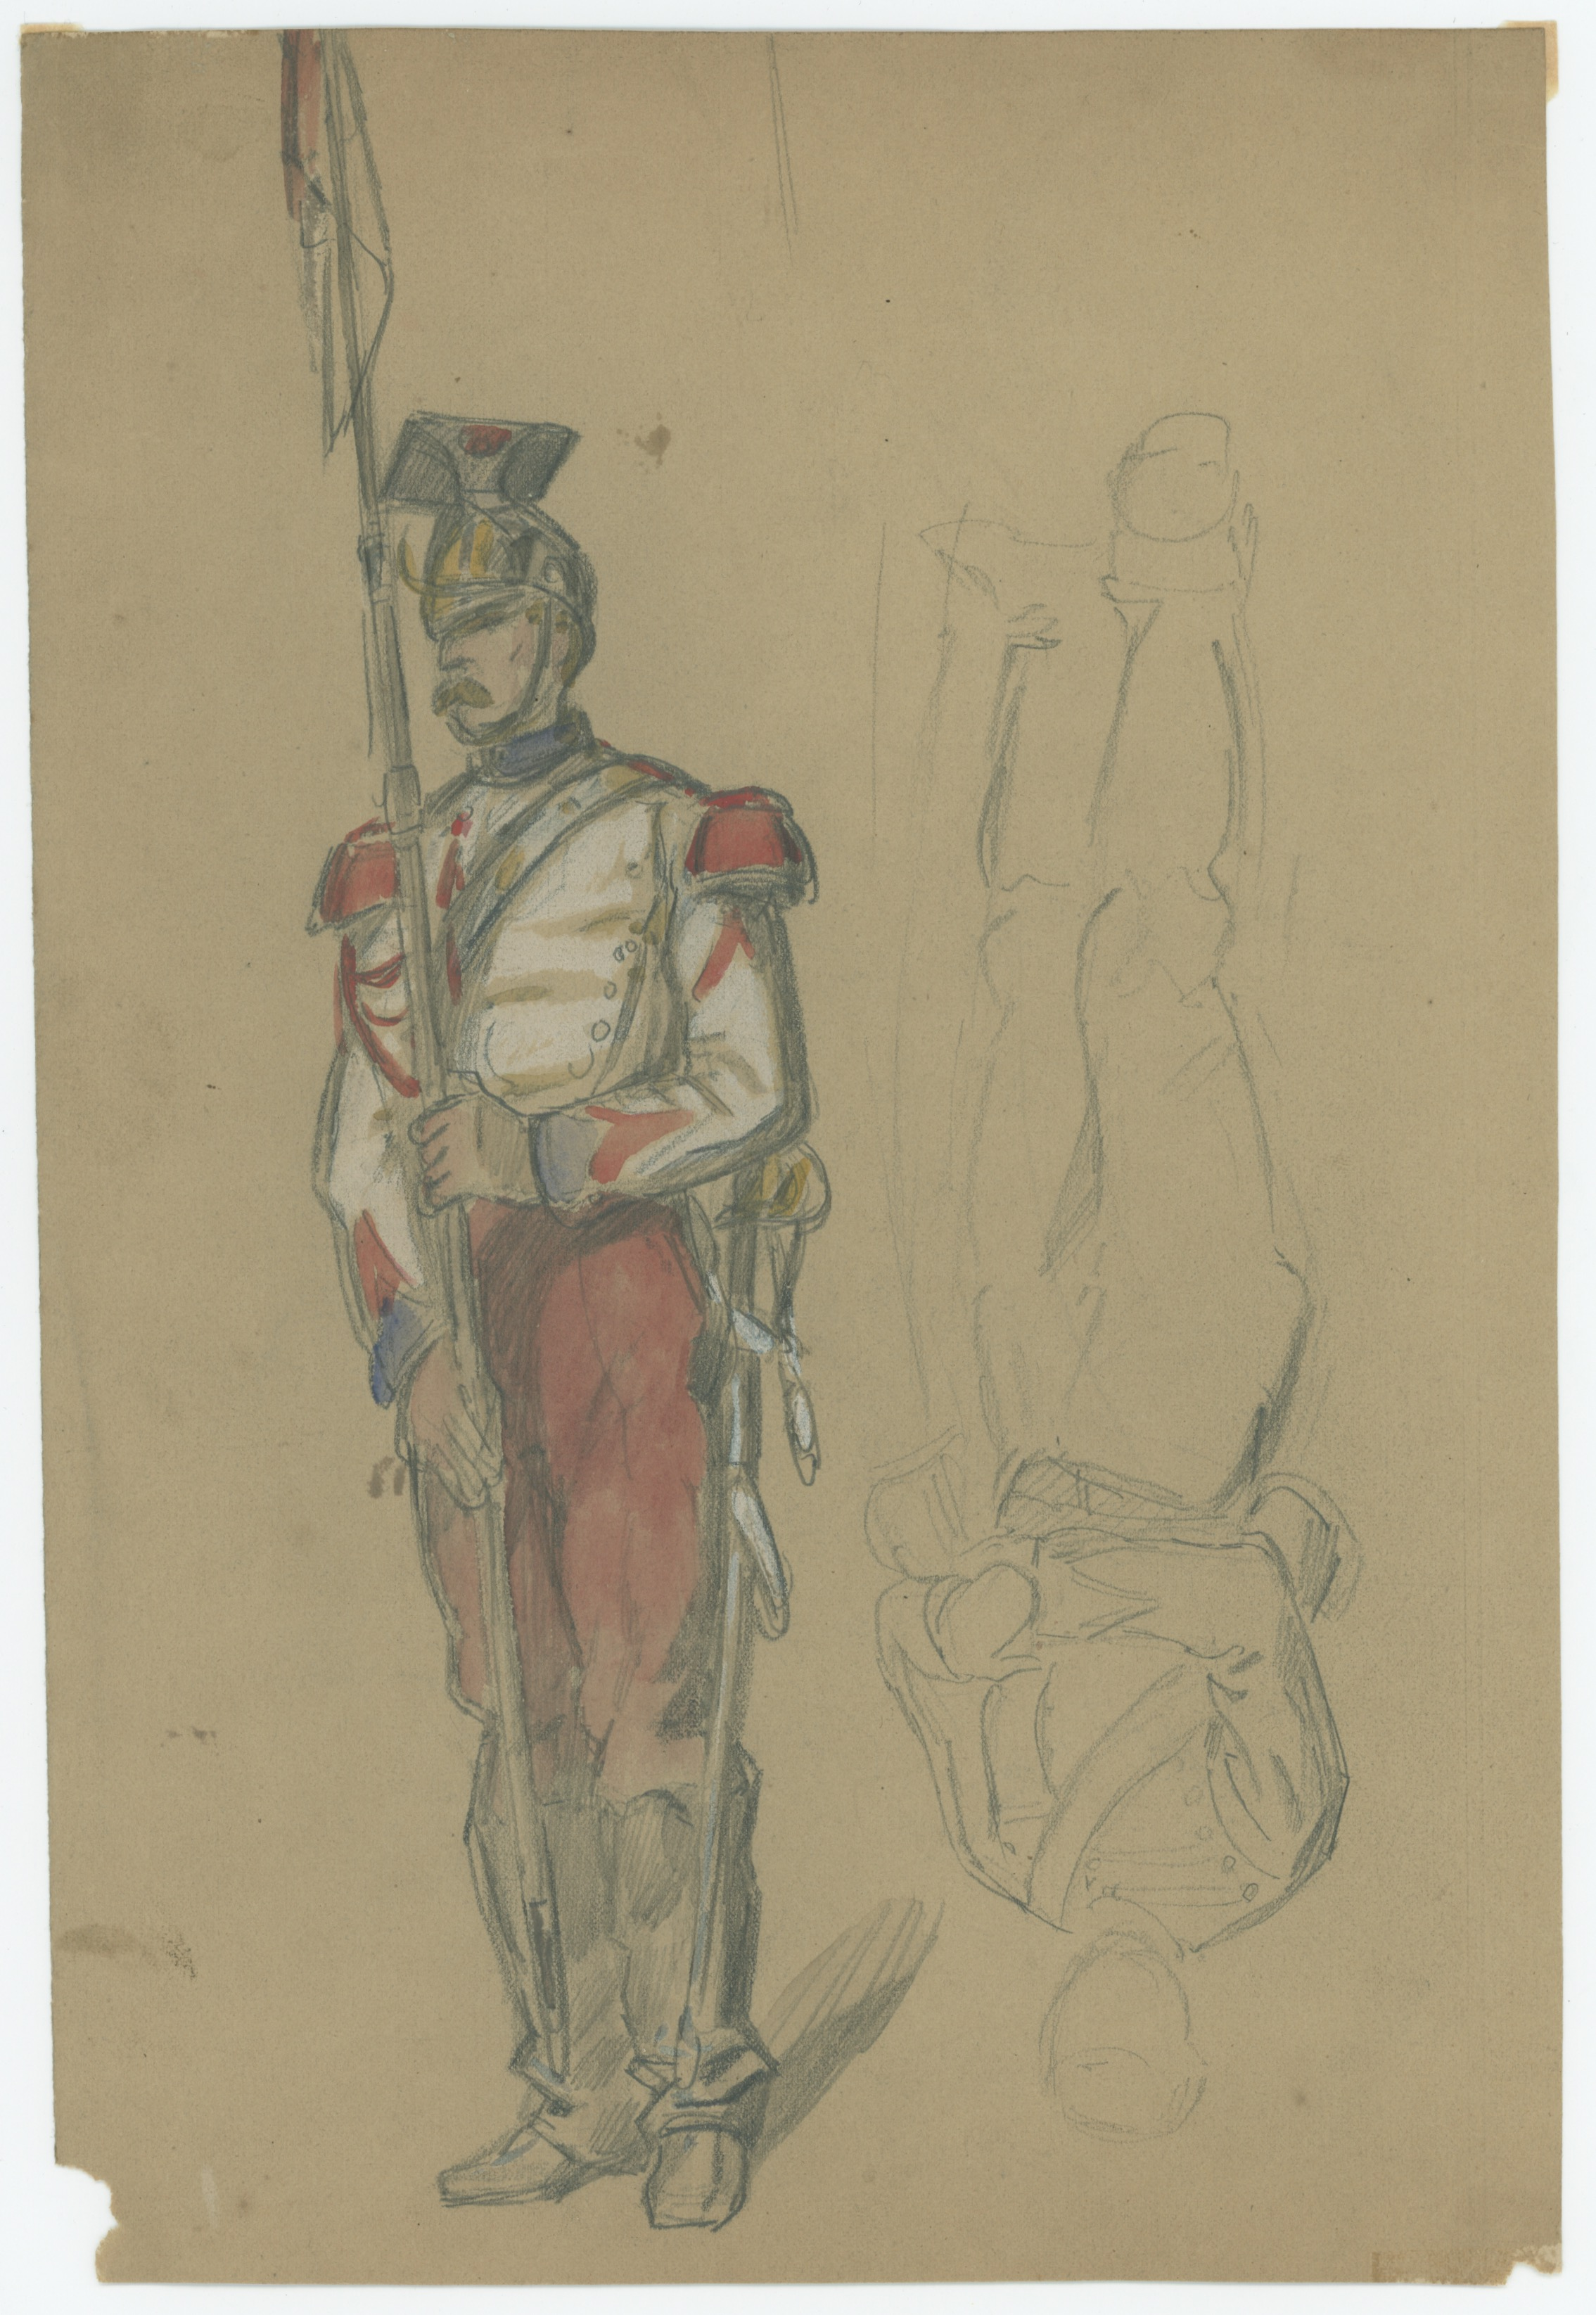 Dessin crayon rehaussé couleurs - Lancier de la Garde - 1860 - Uniforme - Second Empire - Napoléon III - 1870